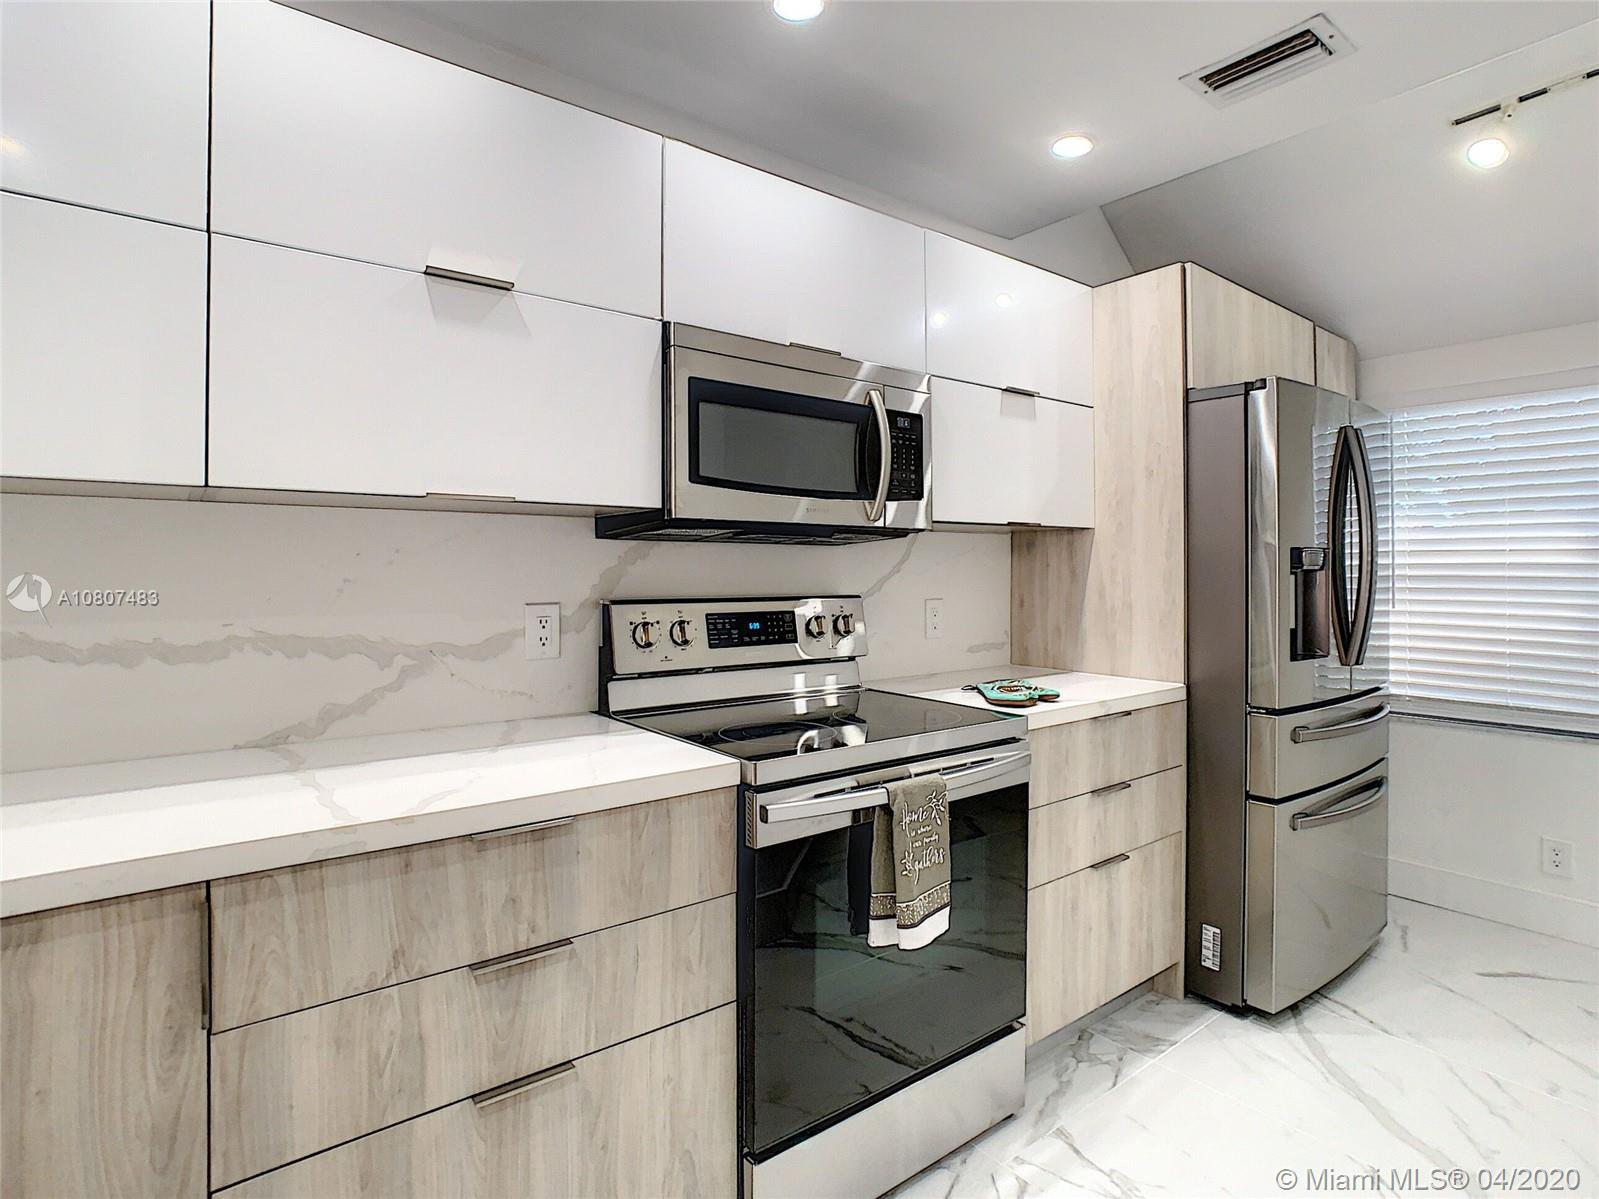 FULLY REMODELED 2 BED 2.5 BATH TOWNHOME NEAR LAS OLAS, THE BEACH & FLL AIRPORT. SMALL GATED COMMUNITY. PORCELAIN 24X48 & LAMINATE FLOORS THROUGHOUT.  EUROPEAN STYLE STAINLESS STEEL APPLIANCES & QUARTZ COUNTERTOP.  LAUNDRY ROOM, FENCED PATIO FOR ENTERTAINMENT, 2 ASSIGNED PARKING SPACES & MUCH MORE.